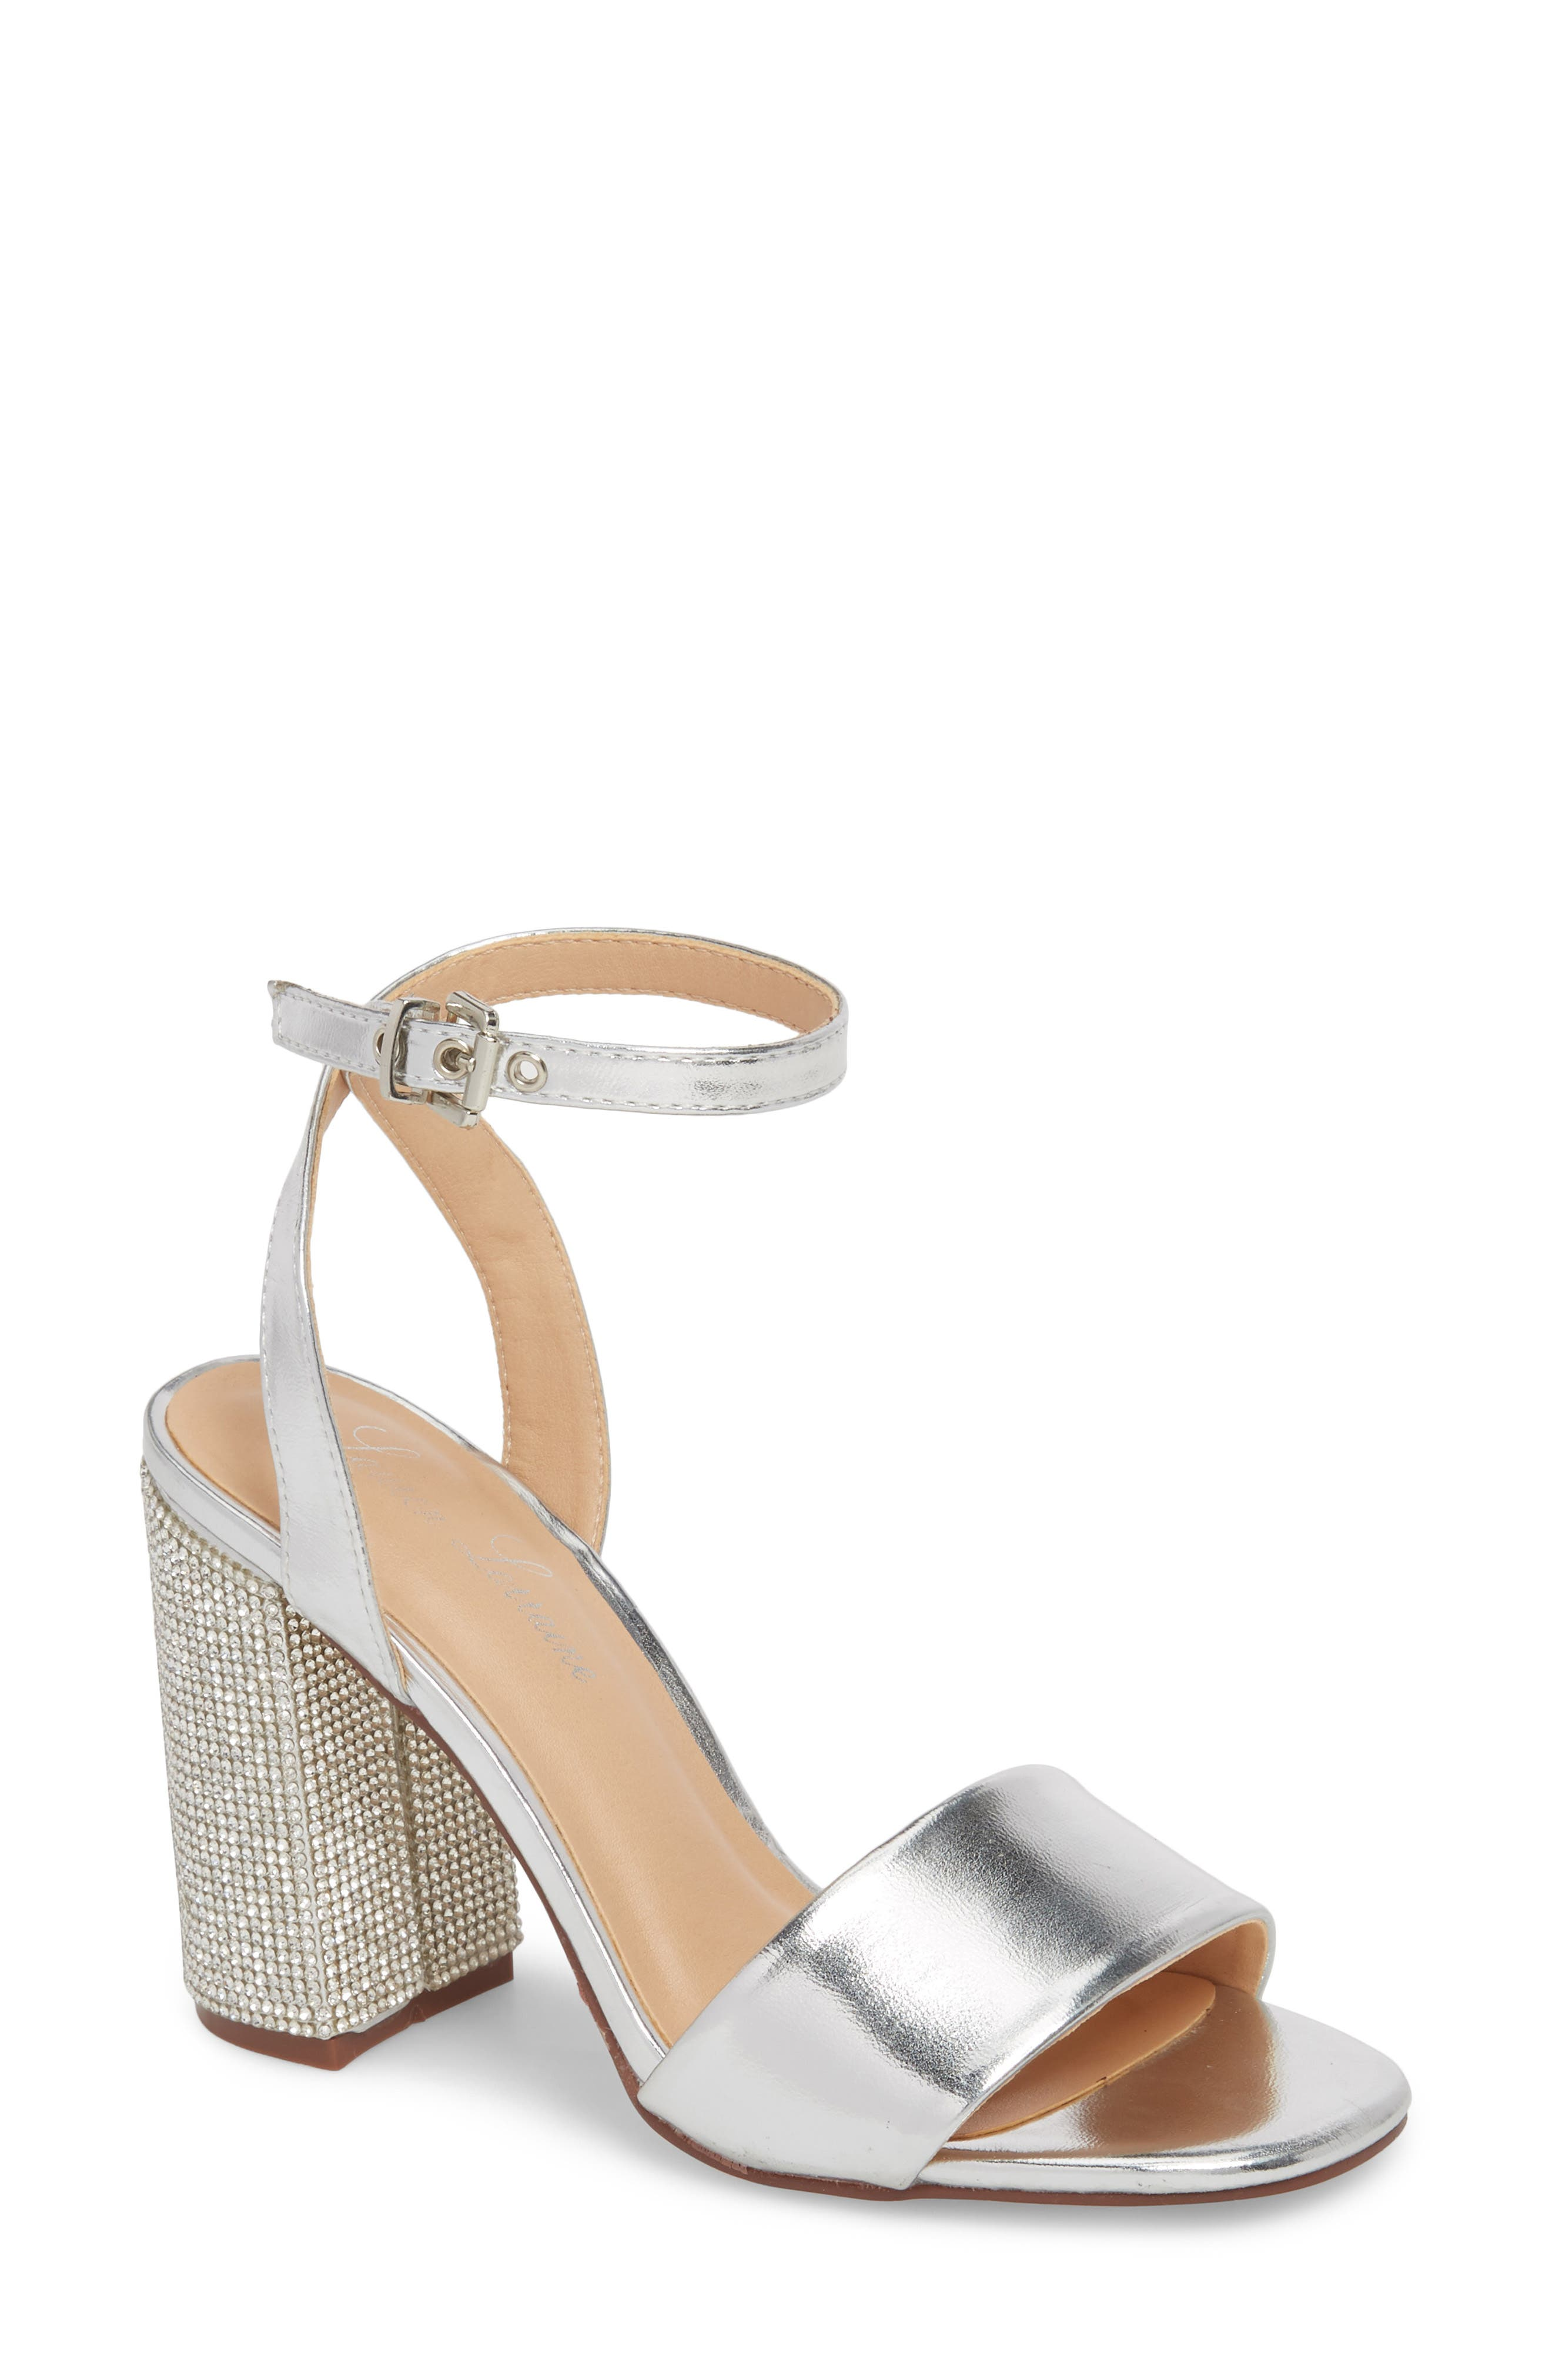 Julia Sandal,                             Main thumbnail 1, color,                             Silver Faux Leather